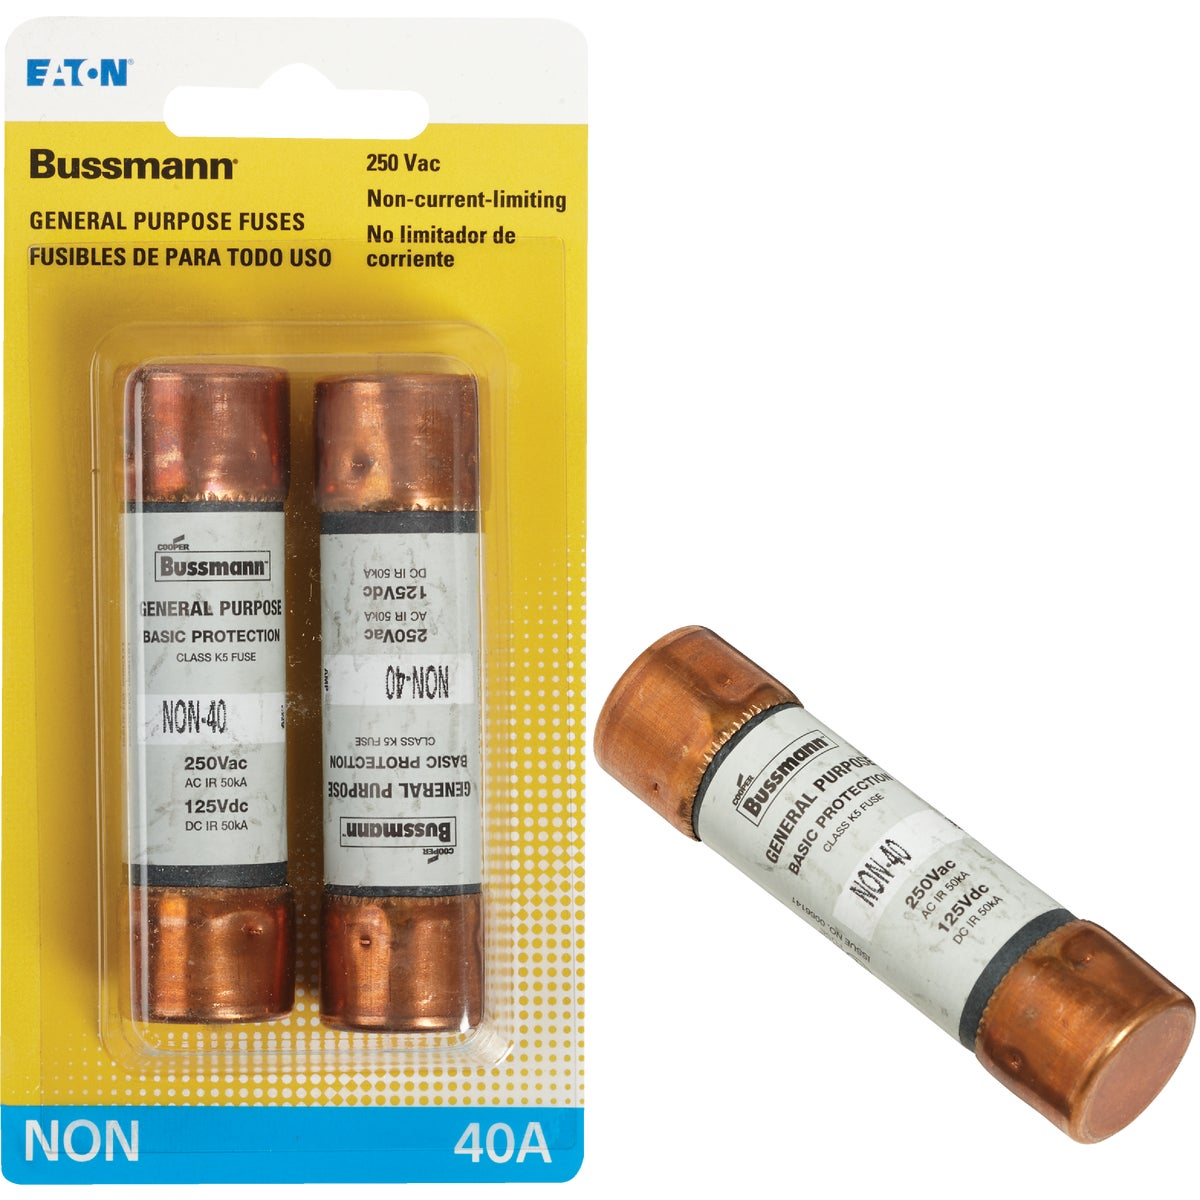 40A NON CARTRIDGE FUSE - BP/NON-40 by Bussmann Cooper